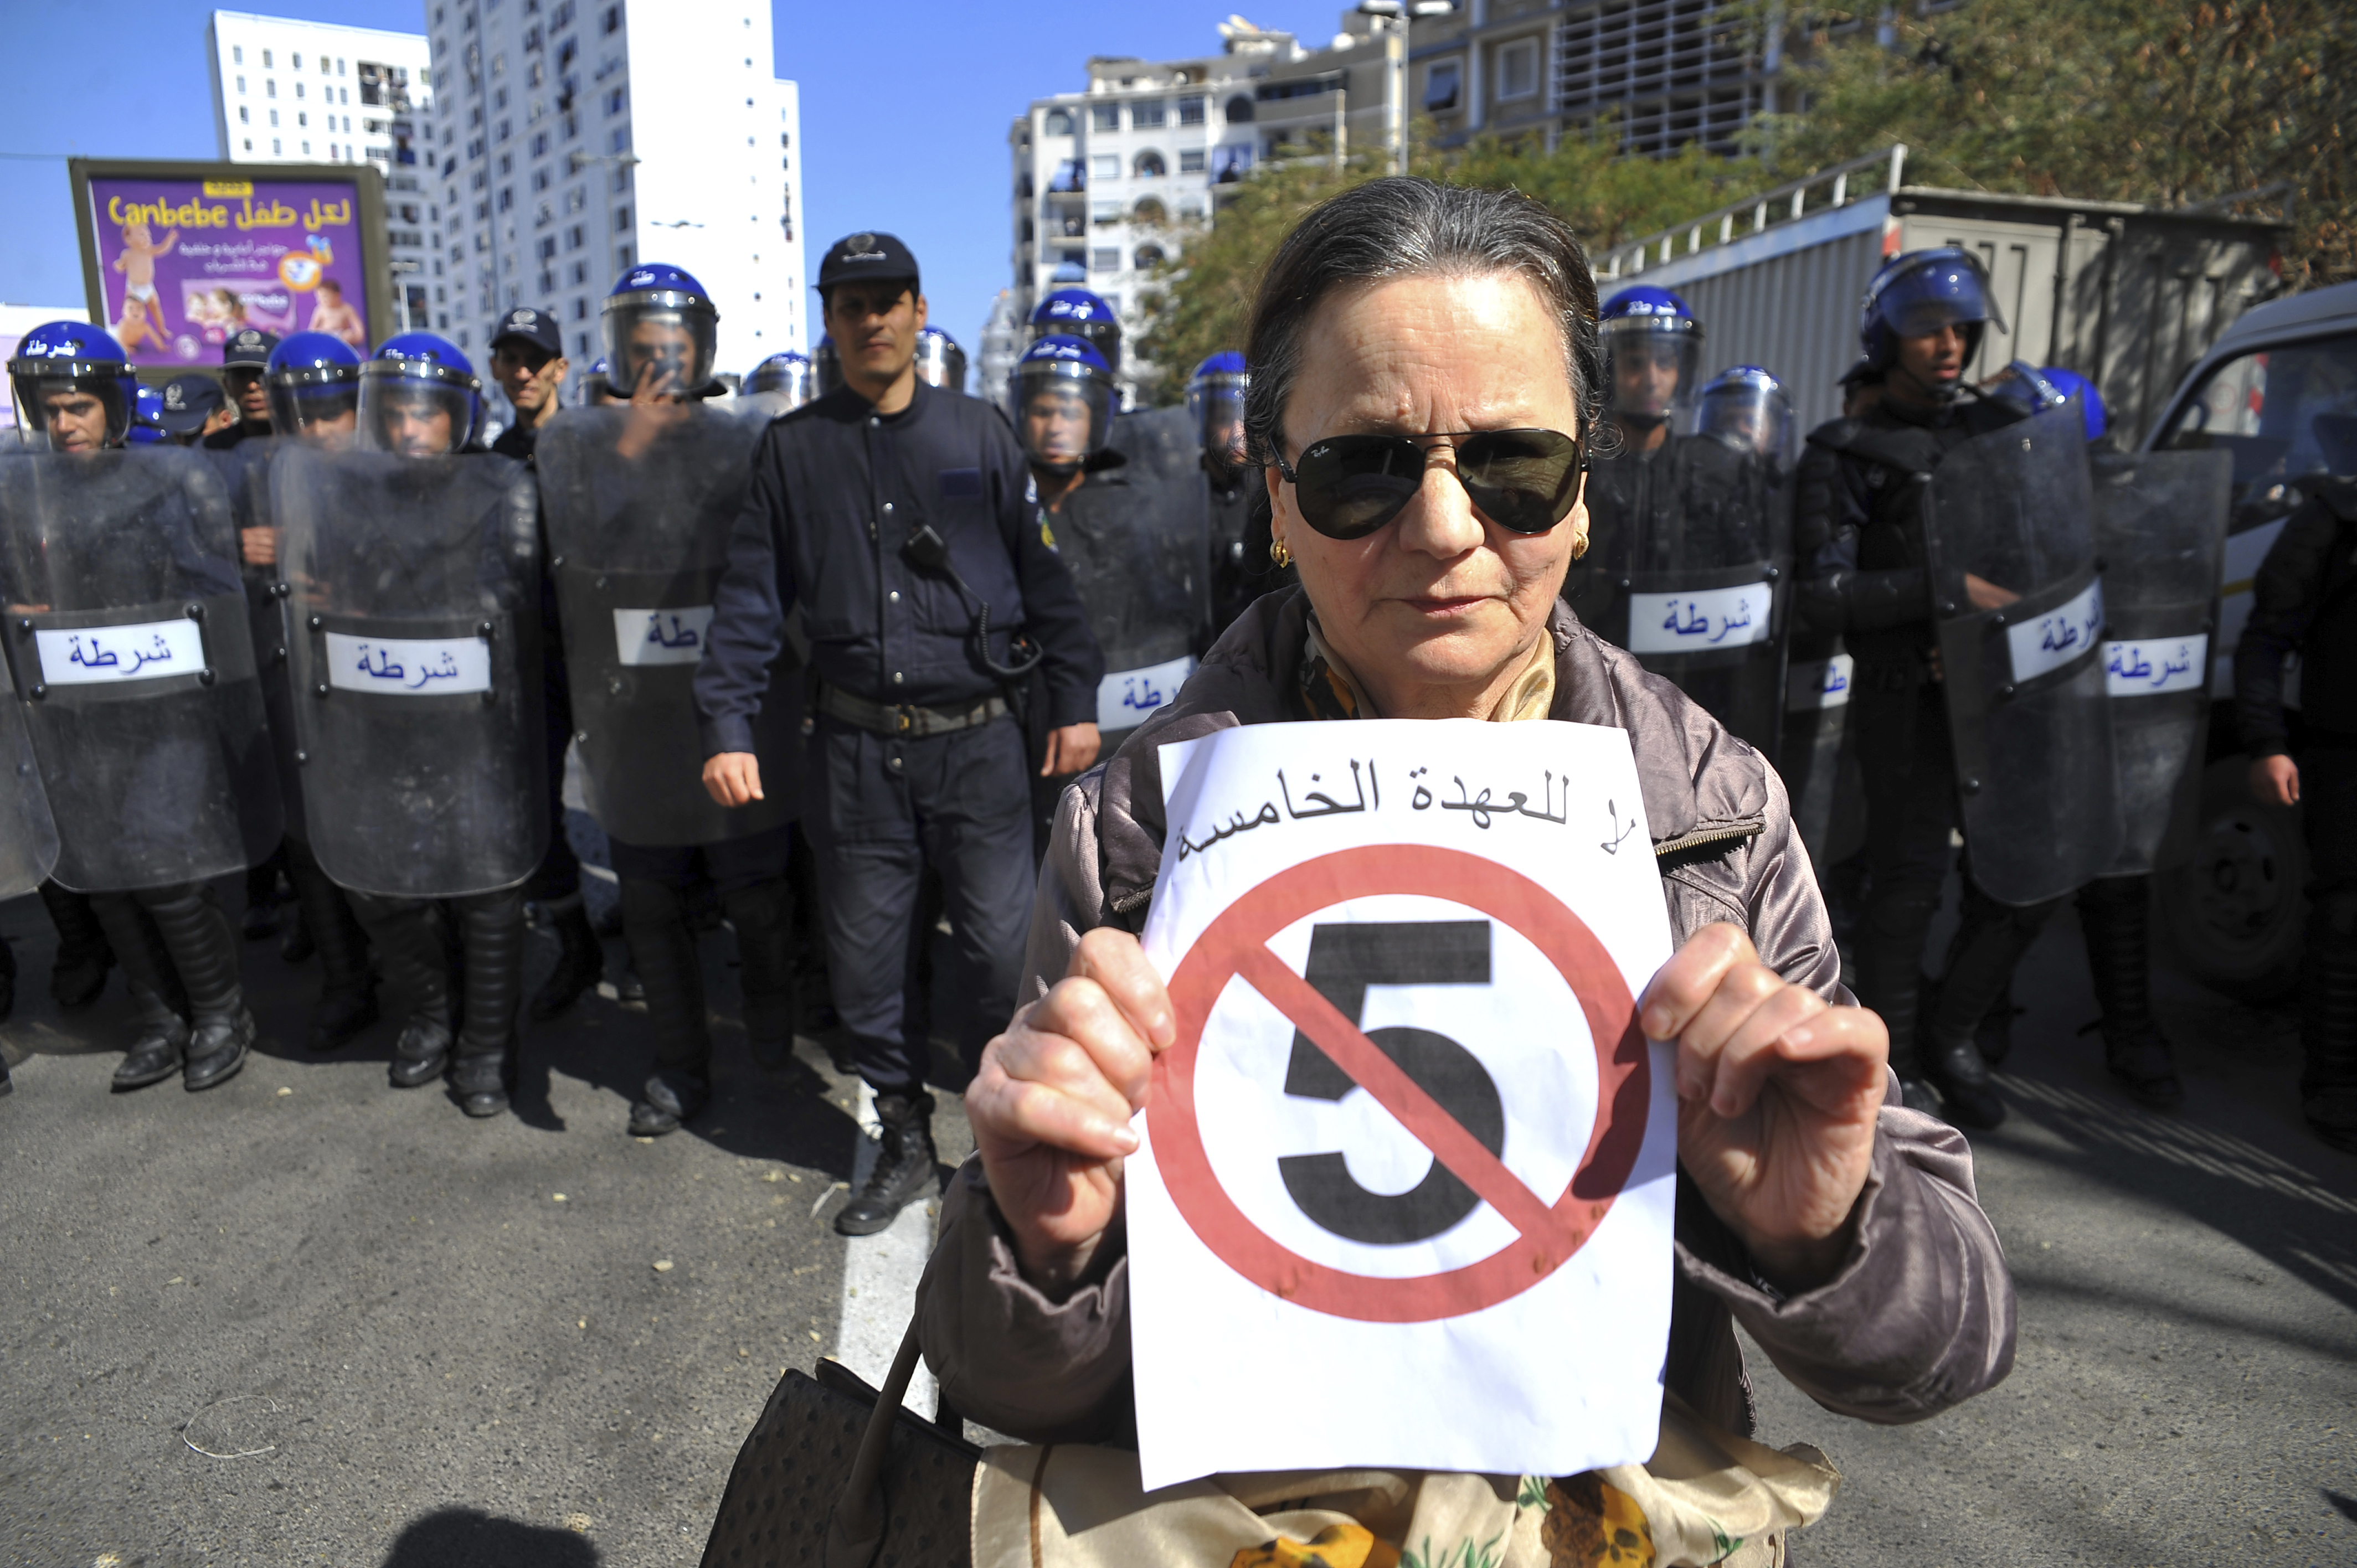 "A woman poses with a sign reading ""No to a 5th turn"" in front of a line of police officers as she demonstrates with others to denounce President Abdelaziz Bouteflika's bid for a fifth term, Friday, March 1, 2019. Tens of thousands of protesters marched through Algeria's capital Friday against ailing President Abdelaziz Bouteflika's bid for a fifth term, surging past a barricade and defying repeated volleys of tear gas fired by police during the tense demonstration."